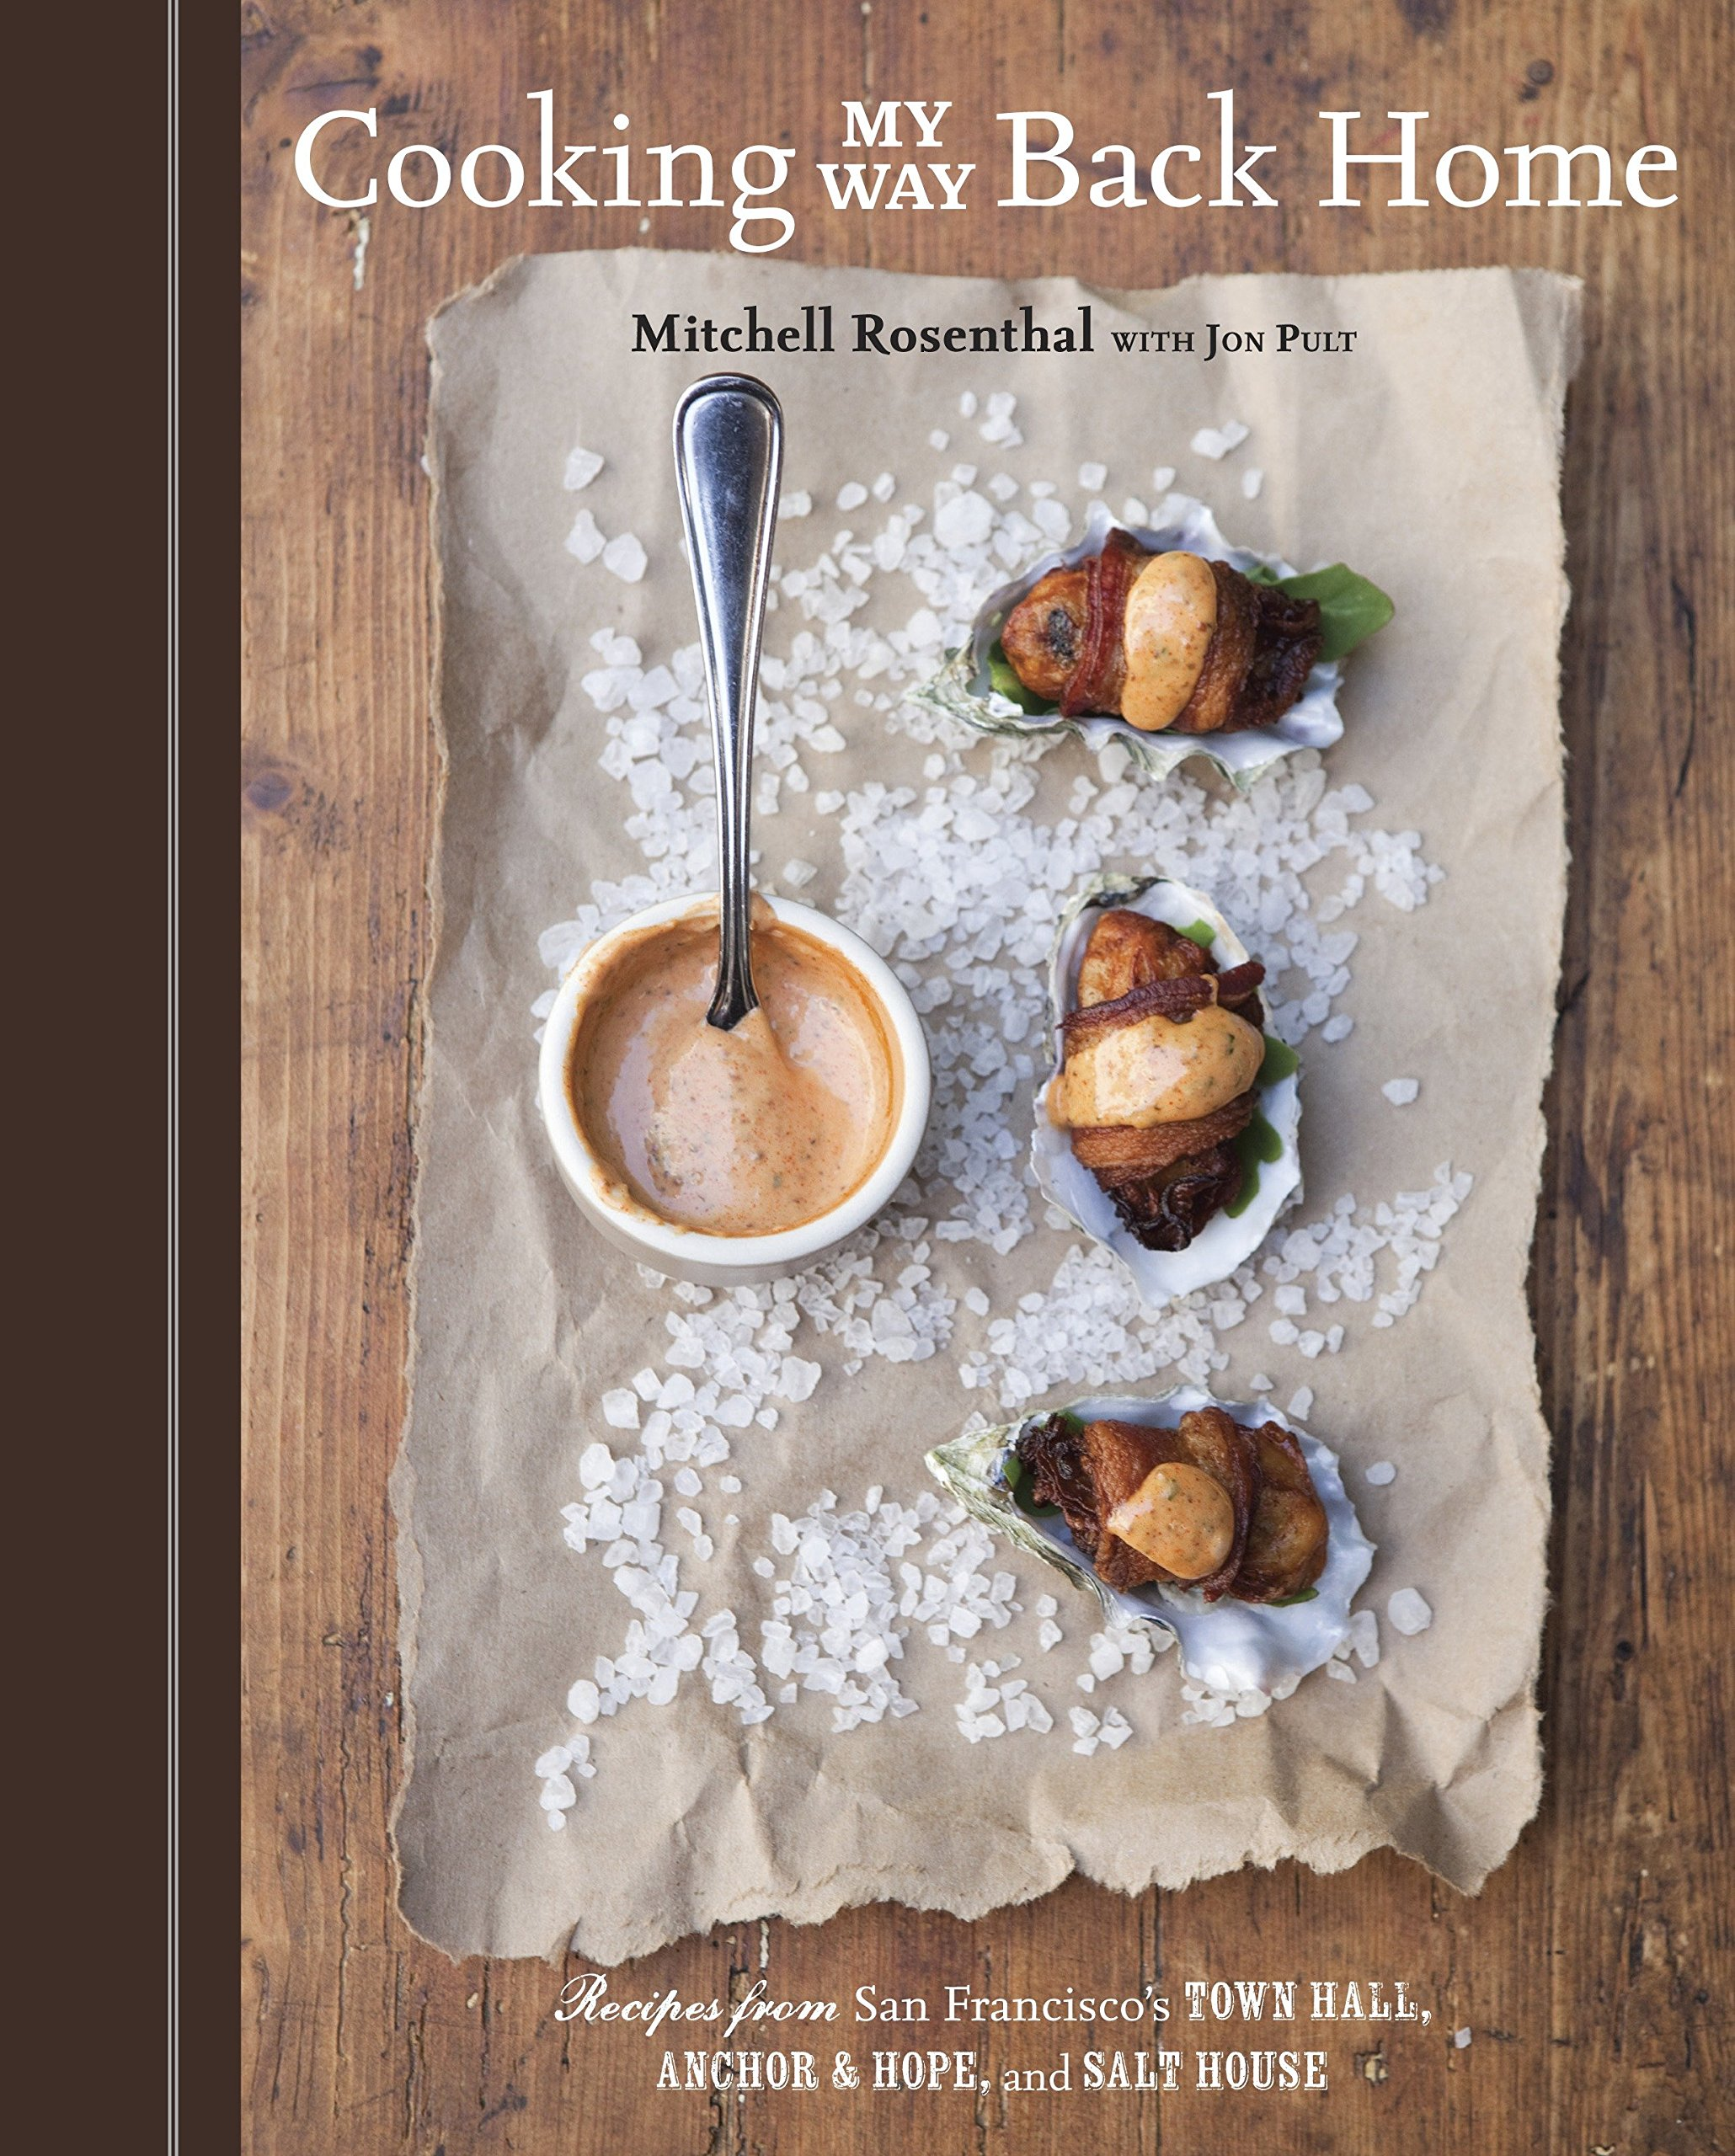 Cooking My Way Back Home: Recipes from San Franciscos Town Hall, Anchor & Hope, and Salt House: Mitchell Rosenthal, Jon Pult: 9781580085922: Amazon.com: ...